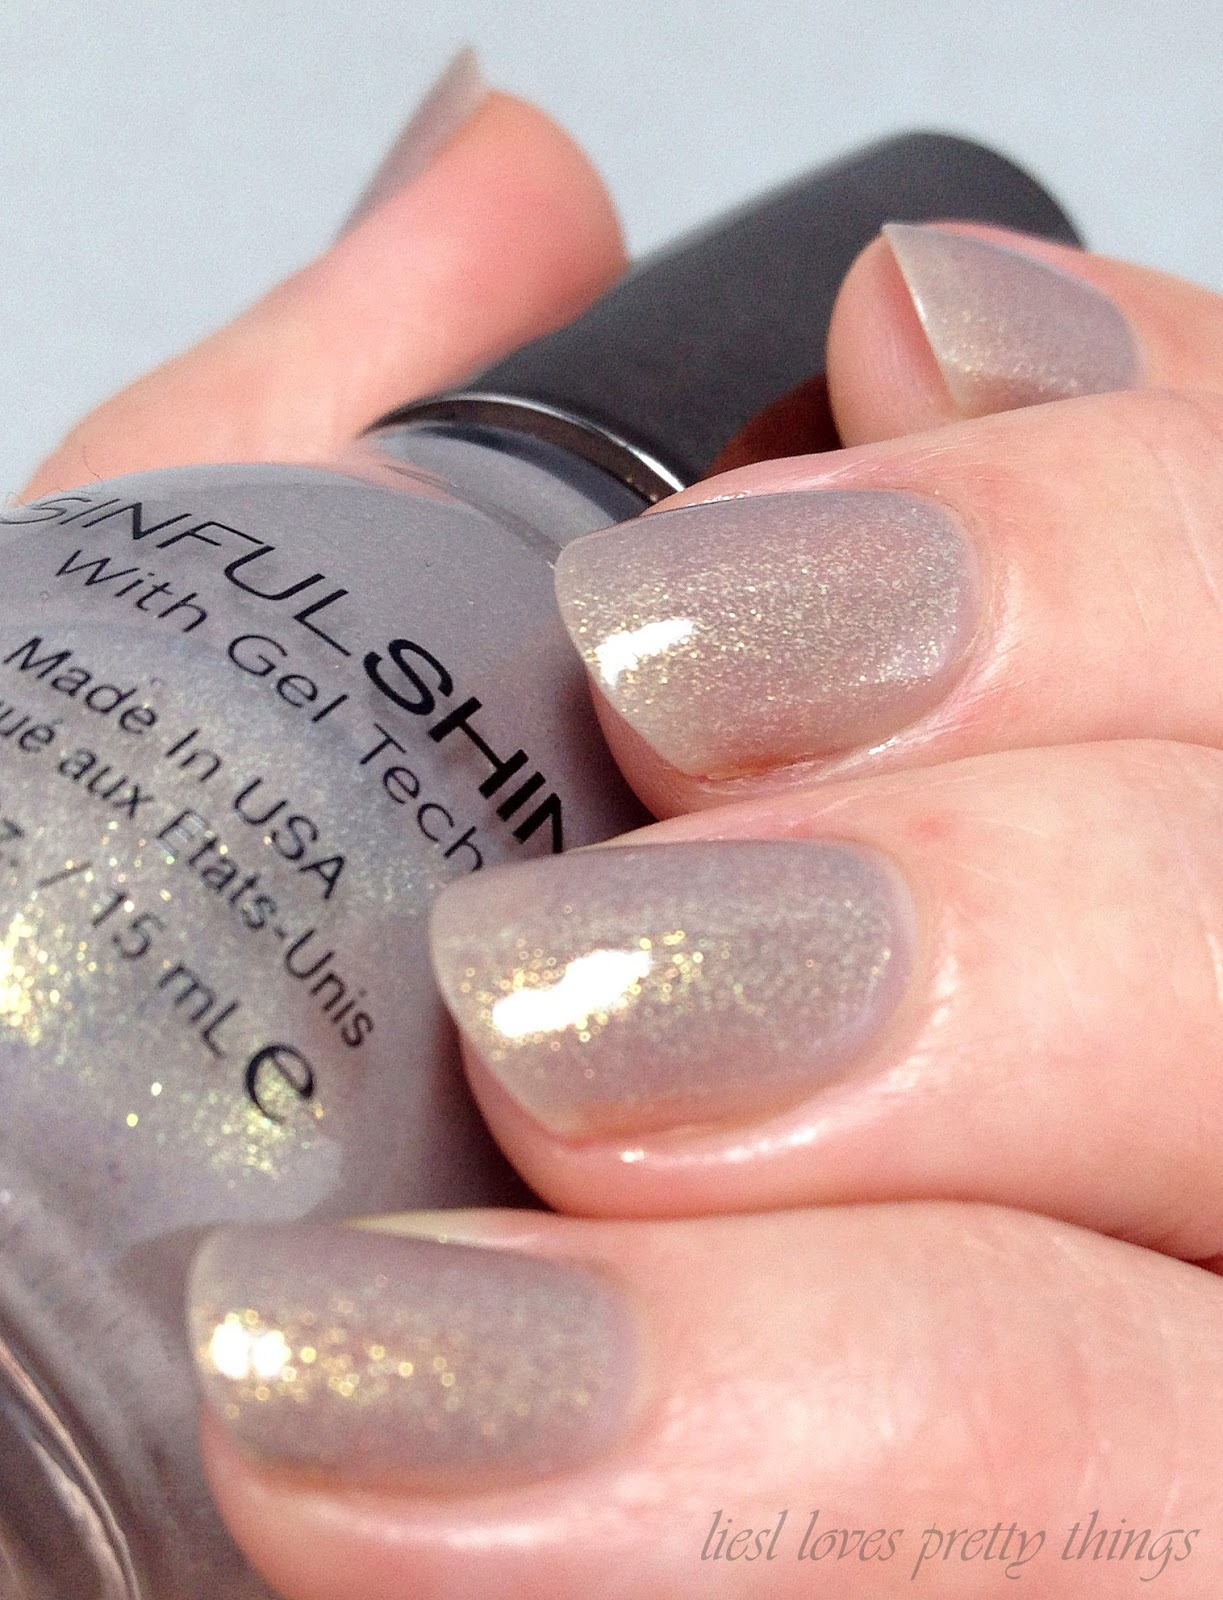 Sinful Shine Prosecco swatch and review